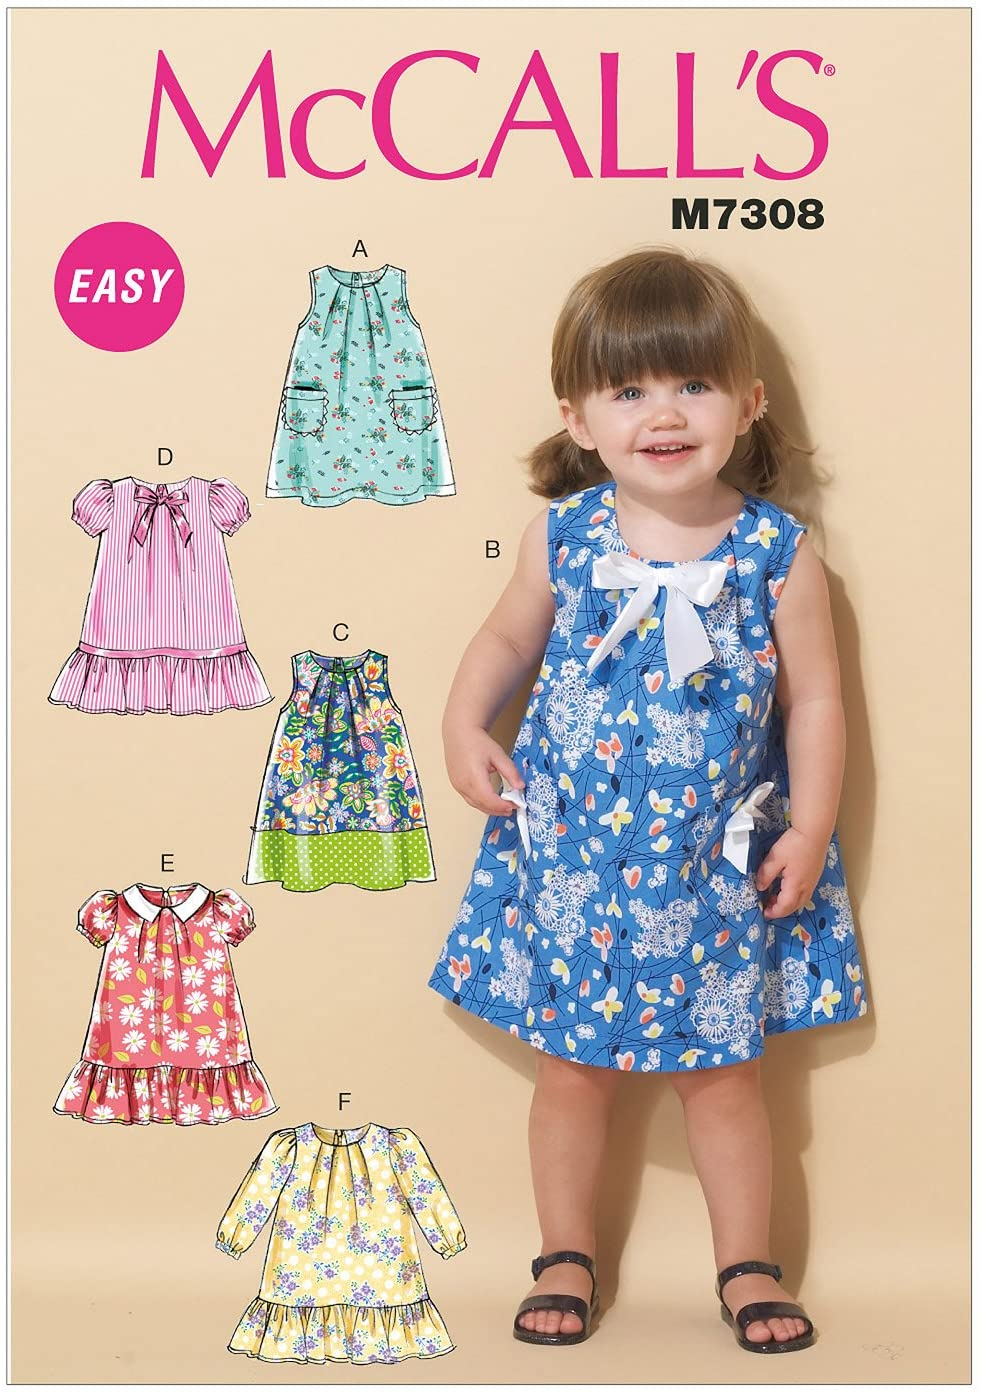 McCall's Patterns M7308 Toddlers' Tent Dresses, CCB